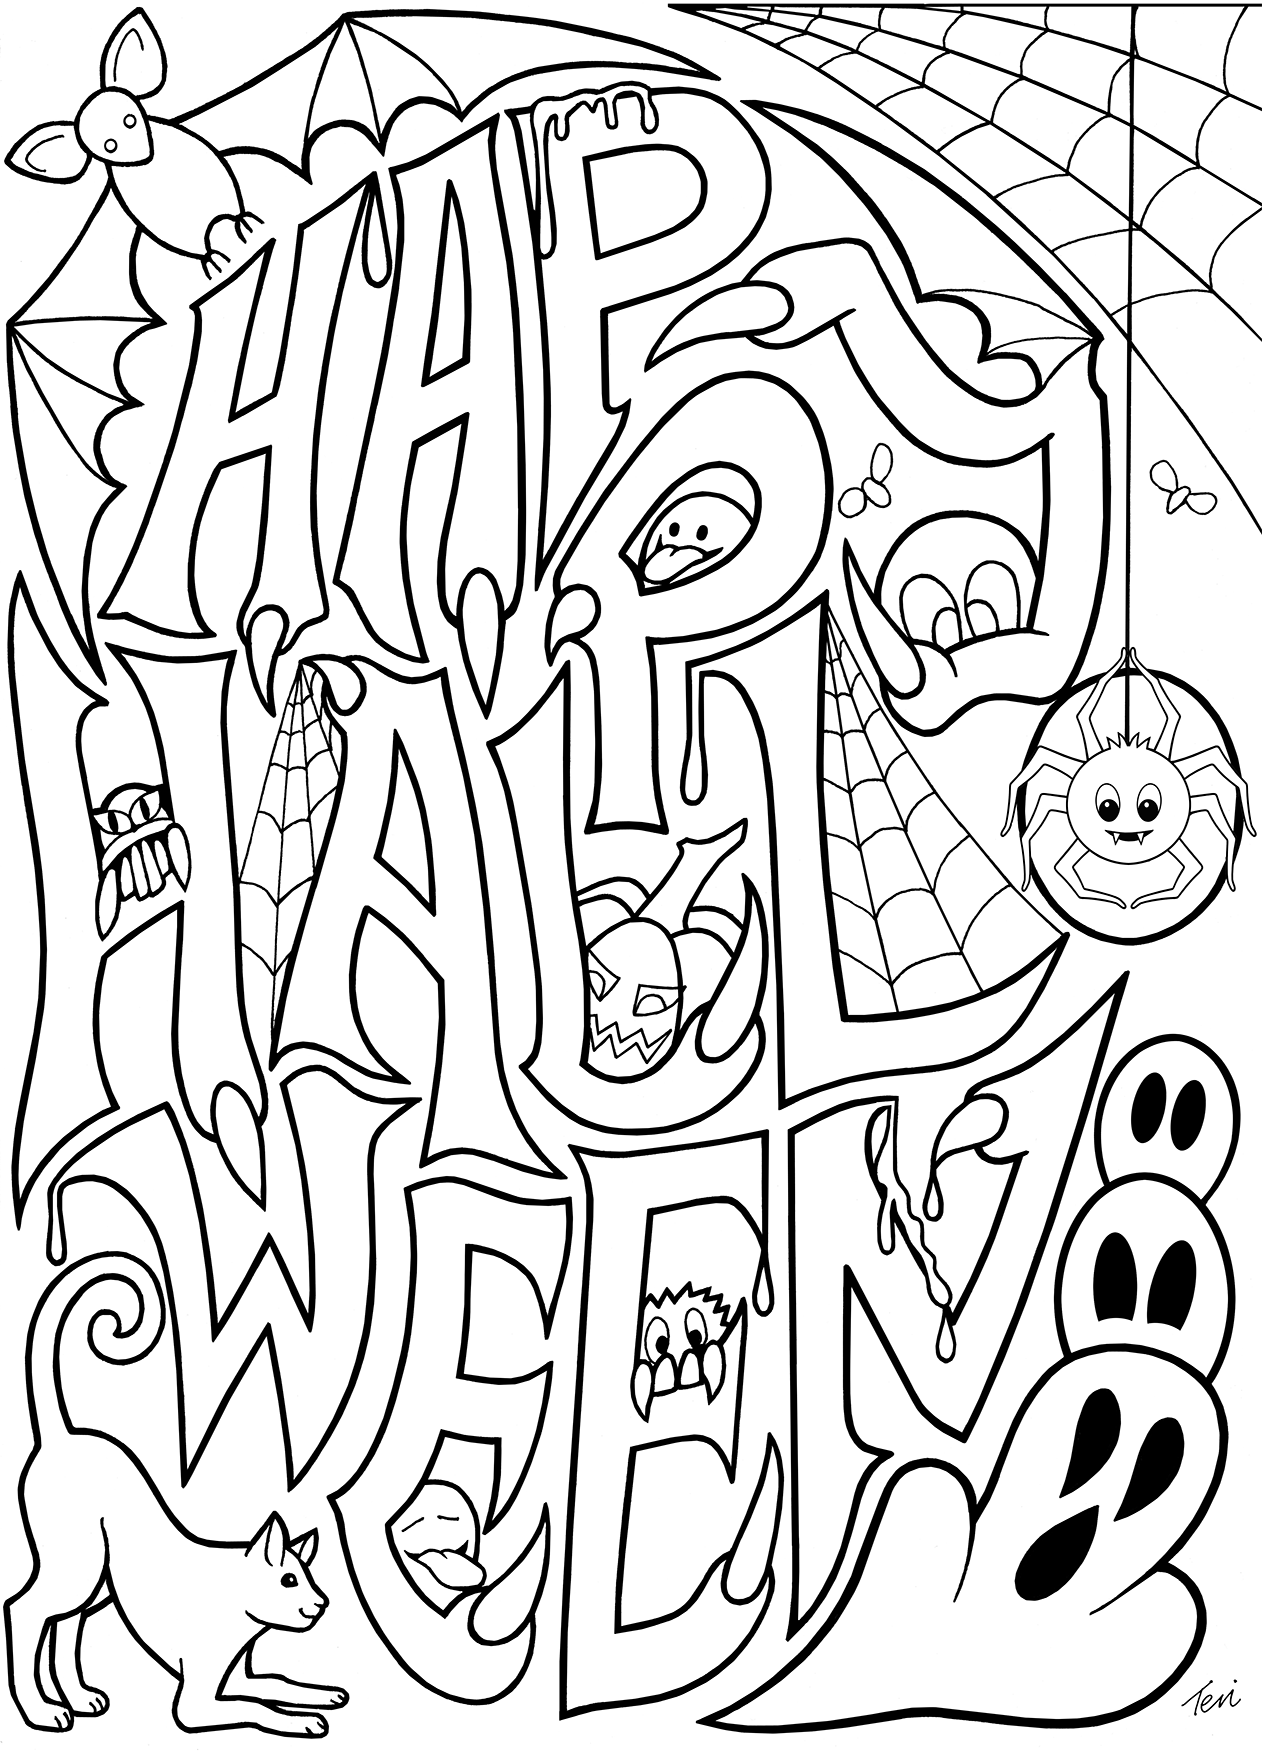 Free adult coloring book pages happy halloween by blue for Halloween coloring pages for adults printables